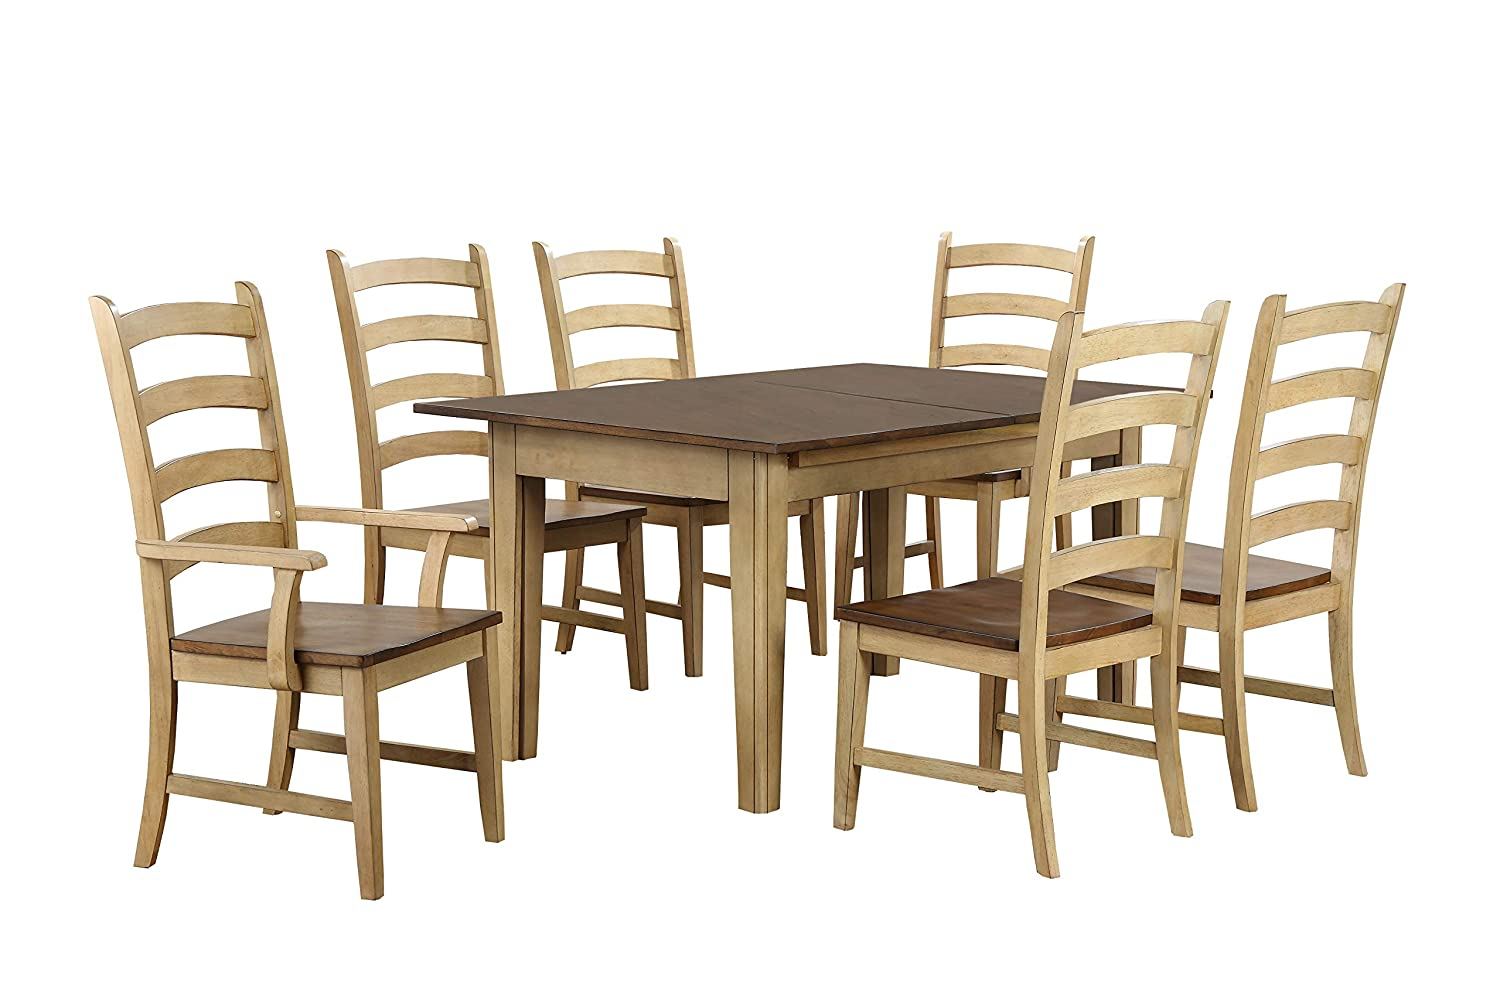 Sunset Trading Brook Dining Table Set, XL, Three Sizes, Distressed Two Tone  Light Creamy Wheat With Warm P